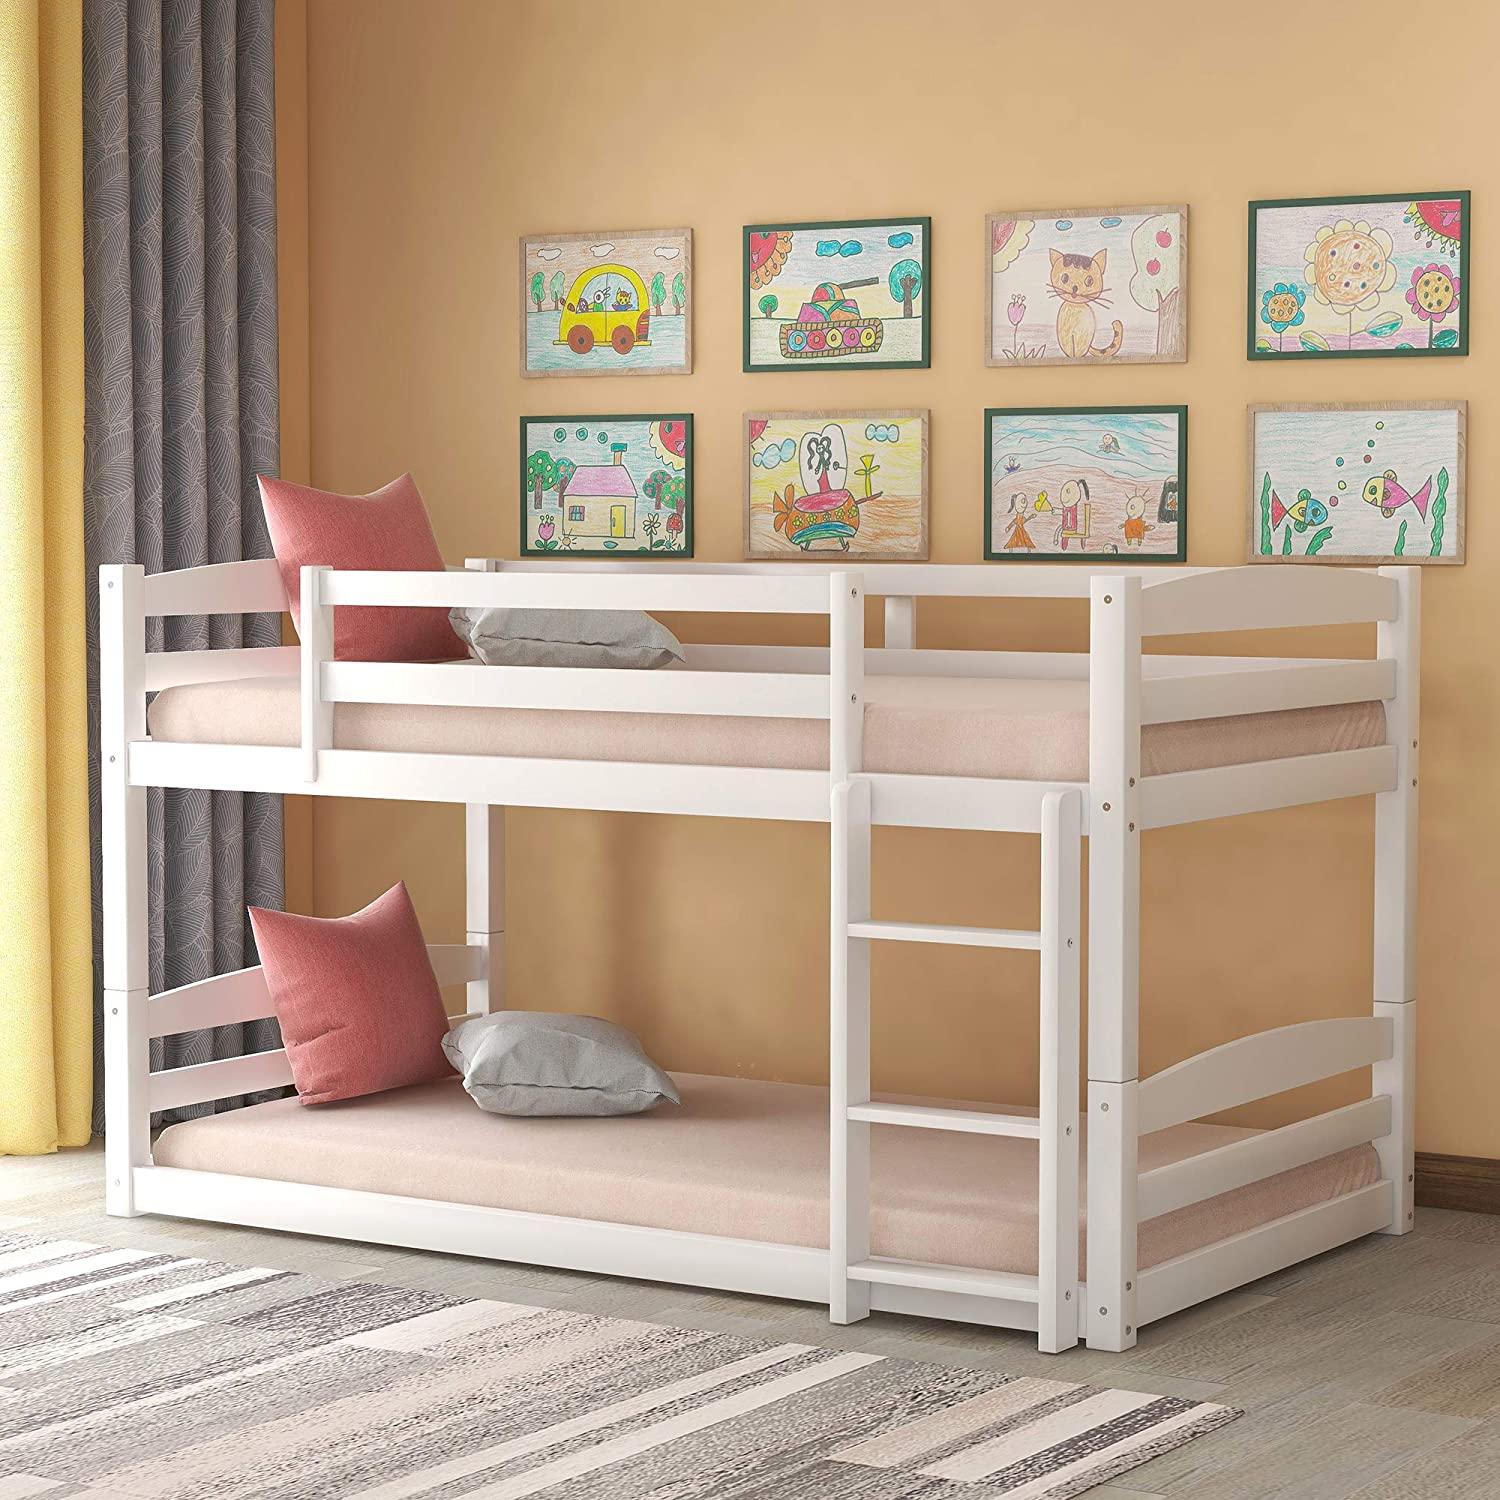 Amazon Com Twin Bunk Beds Solid Wood Twin Over Twin Bunk Bed Frame With Built In Ladders For Kids Toddlers White Kitchen Dining